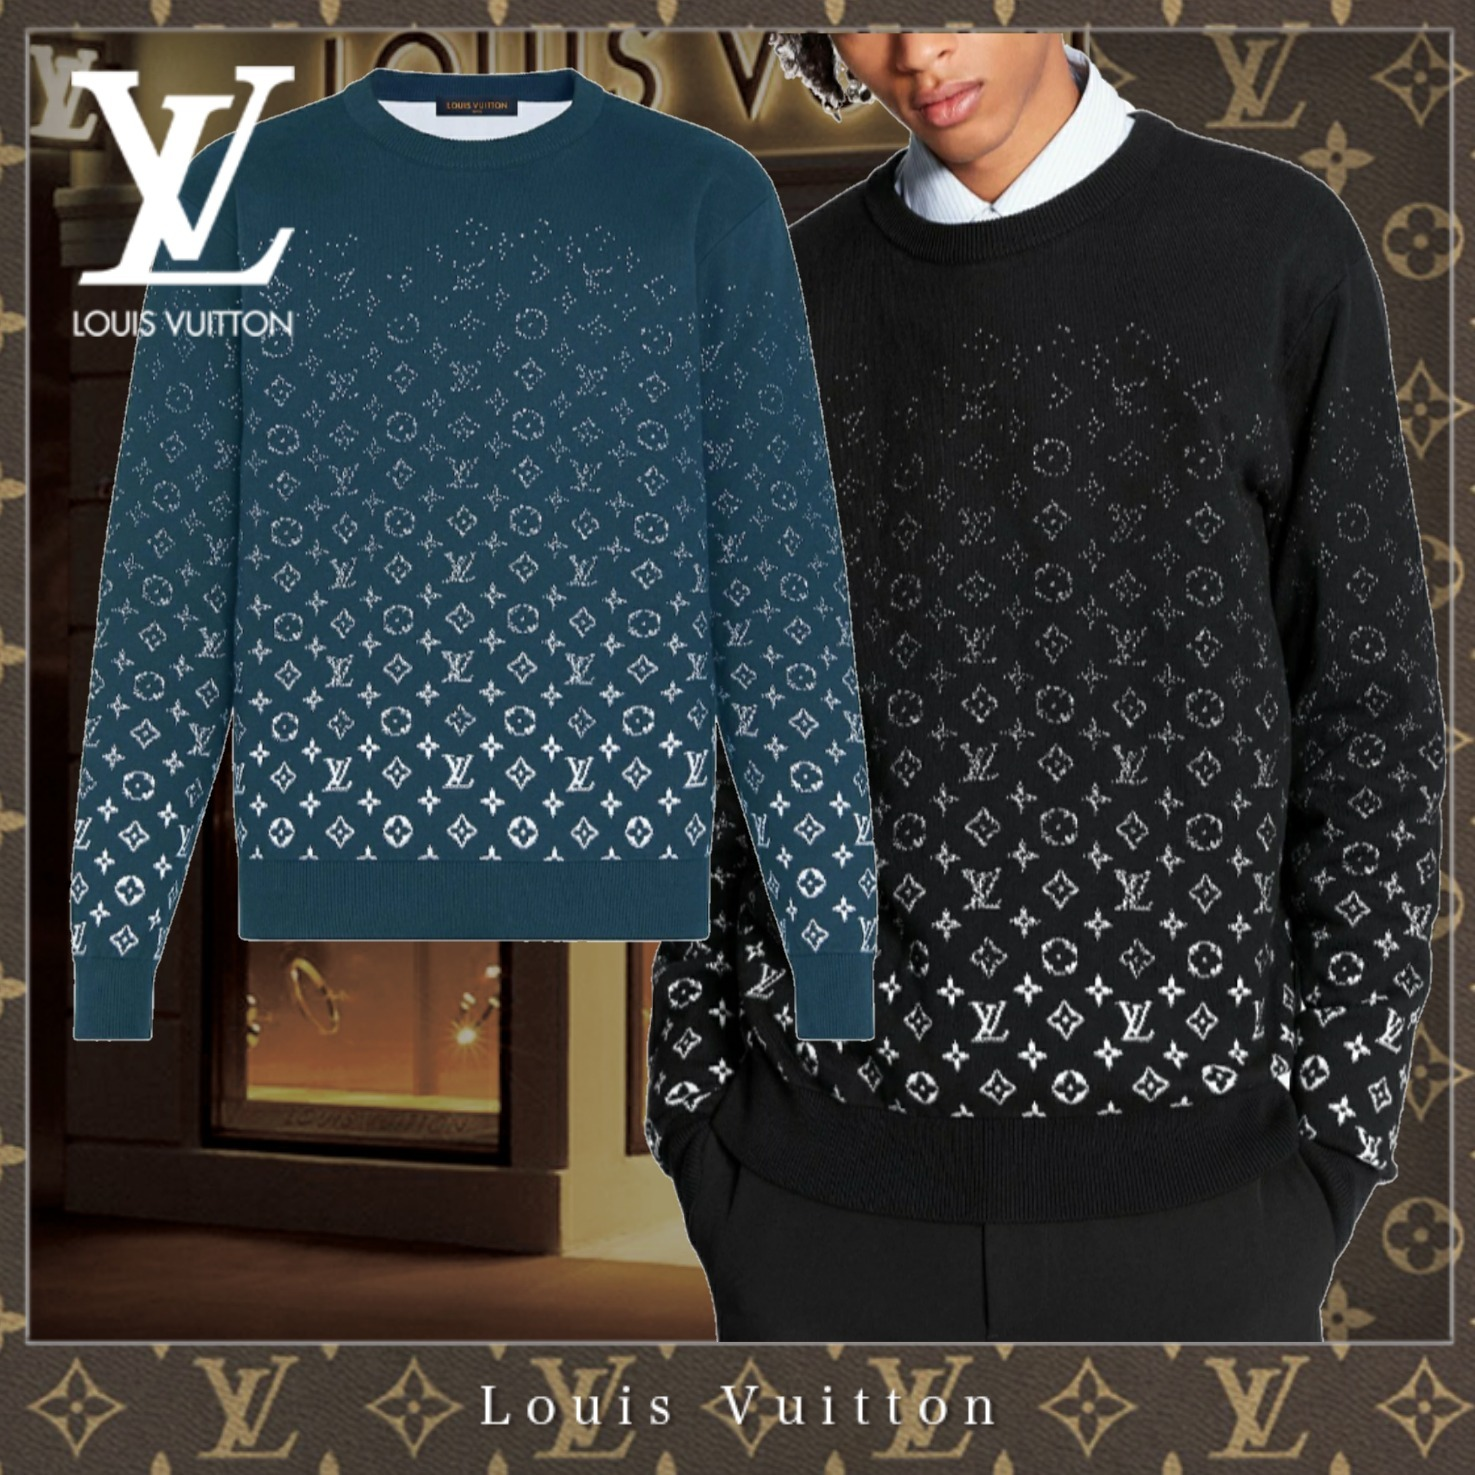 20FW★直営 LouisVuitton グラディエントモノグラムクルーネック (Louis Vuitton/Tシャツ・カットソー) 1A8A1N / 1A8A1T  1A8A1O / 1A8A1U  1A8A1P / 1A8A1V